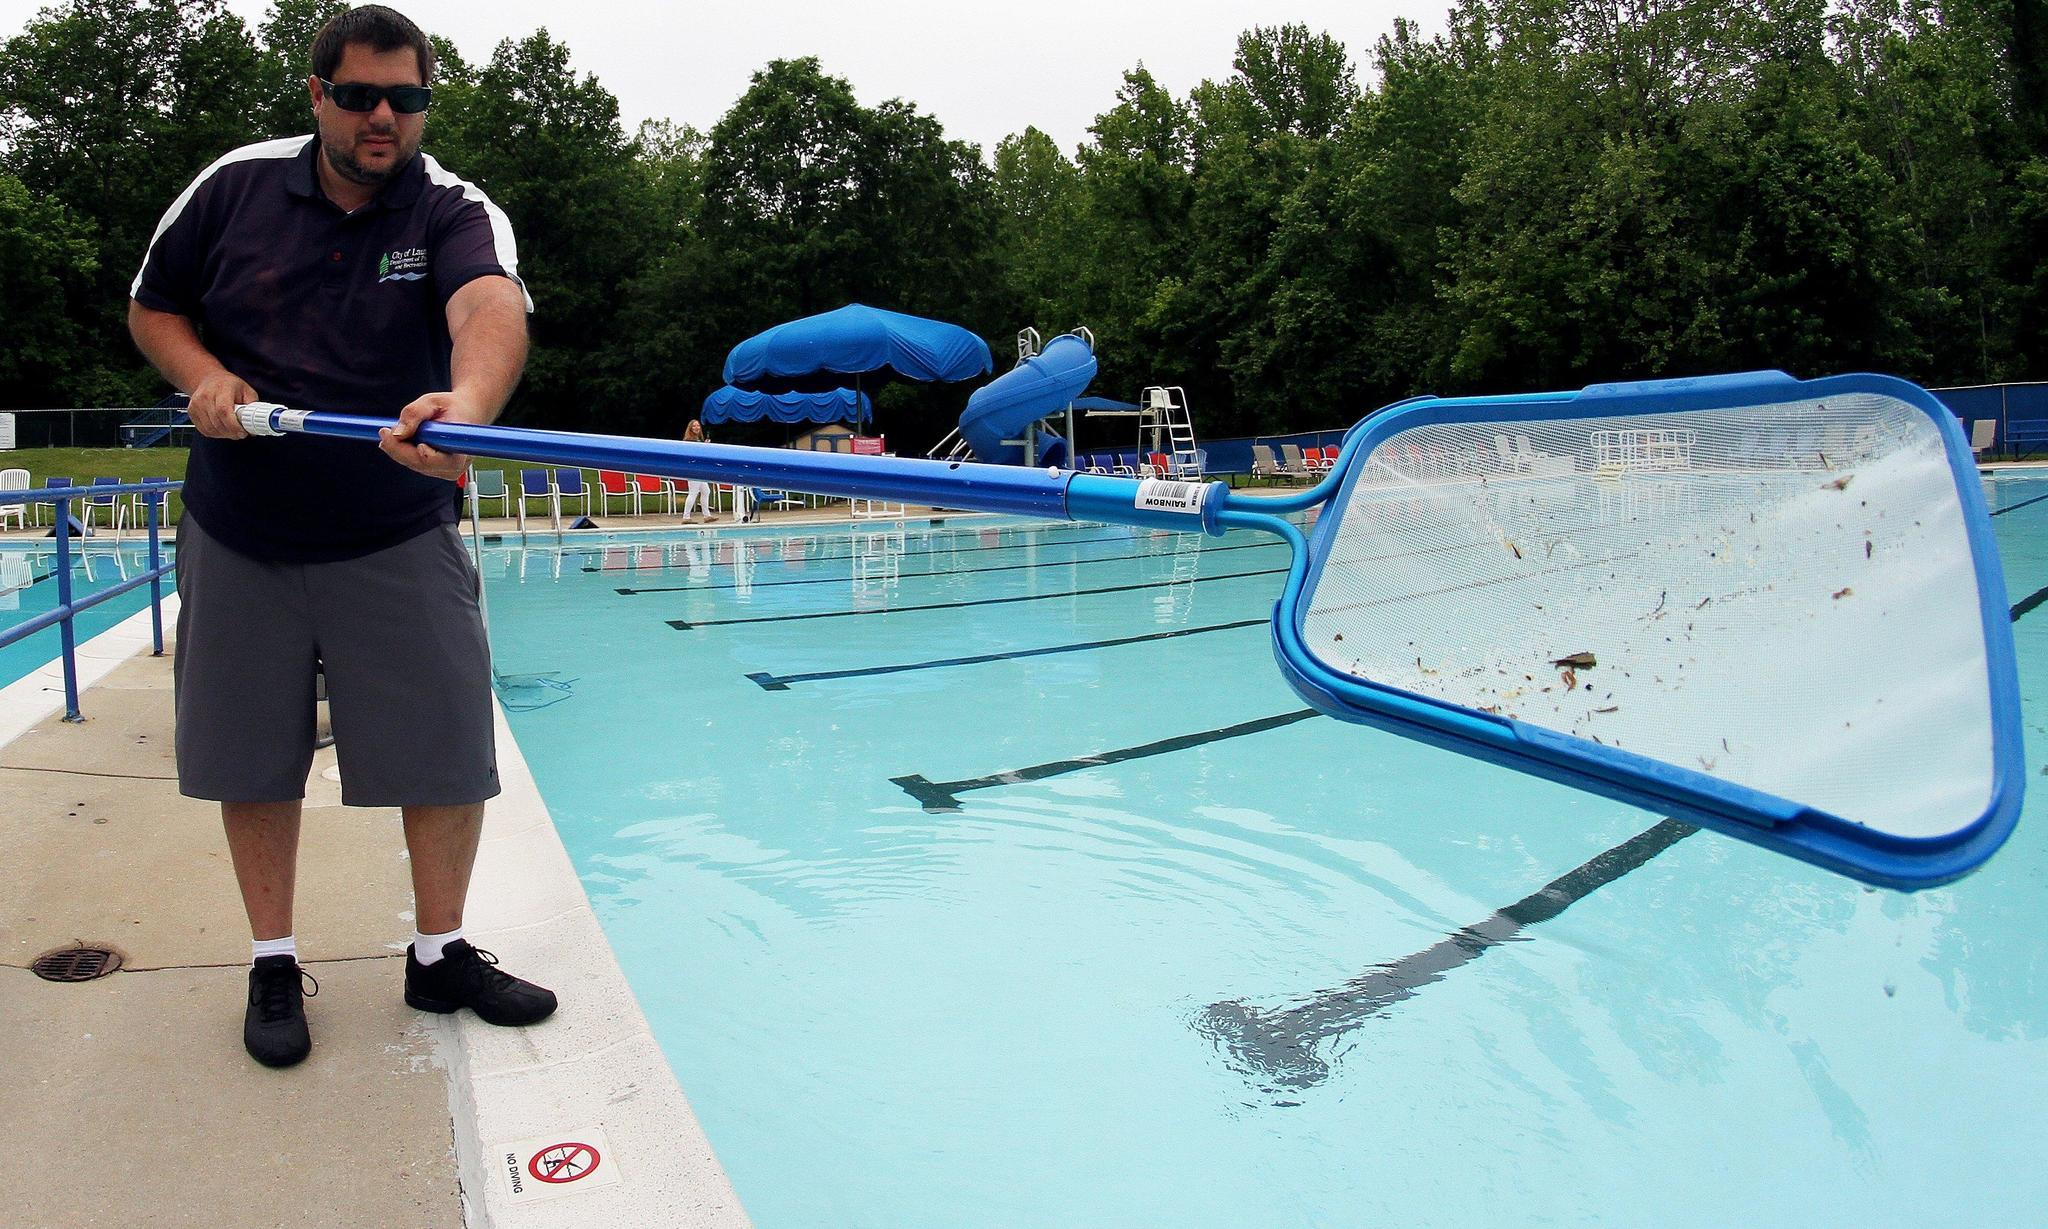 Parks and rec prep city pools for memorial day weekend debut laurel leader laurel maryland news for Laurel municipal swimming pool